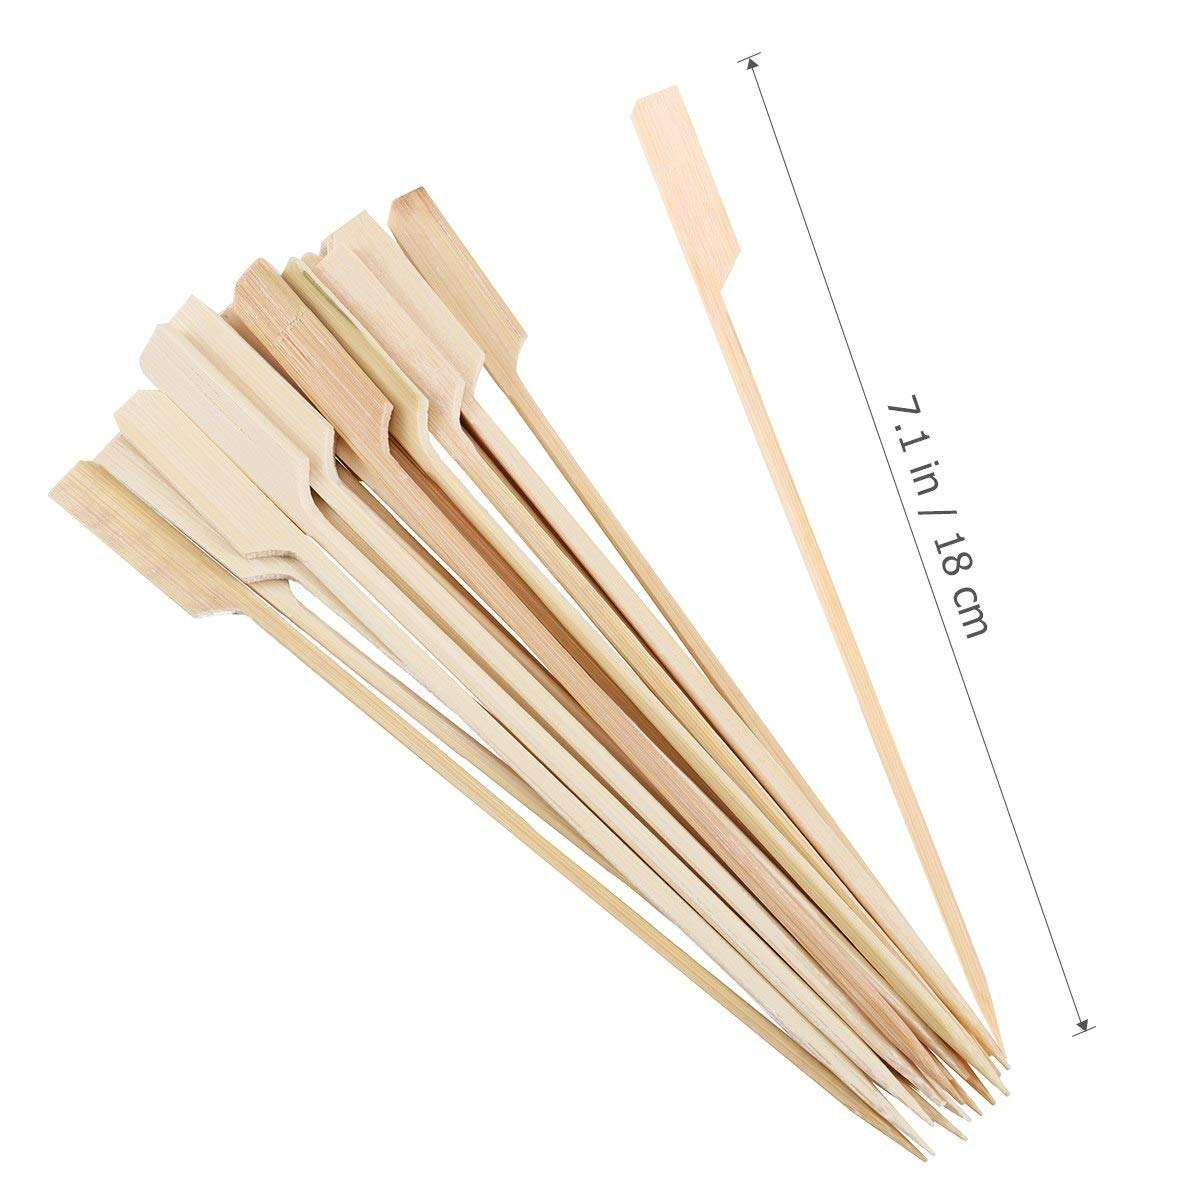 China factory manufacture bamboo and wooden bbq skewer